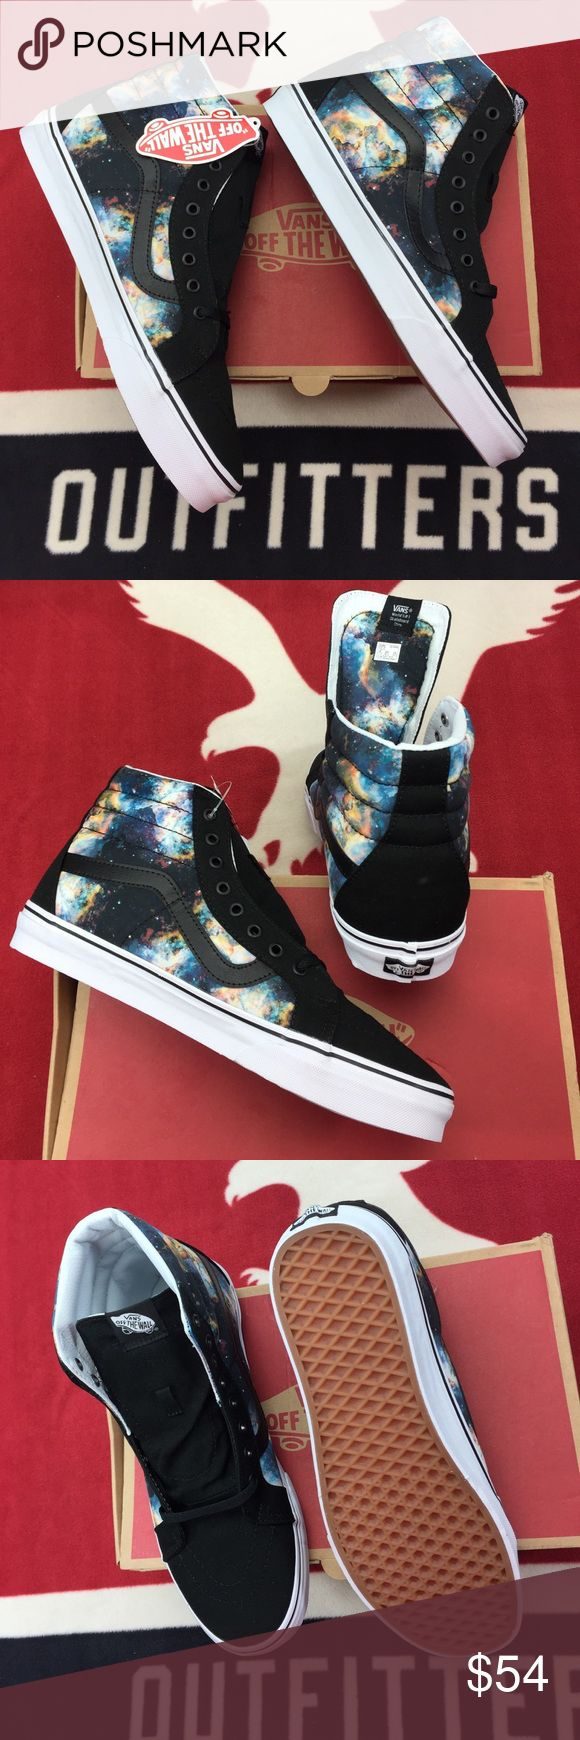 Vans Sk8-Hi Reissue Nebulas' Vans Sk8-Hi, the legendary lace-up high top, features sturdy uppers, re-enforced toecaps to withstand repeated wear, padded collars for support and flexibility, and signature rubber waffle outsoles. Vans Shoes Sneakers